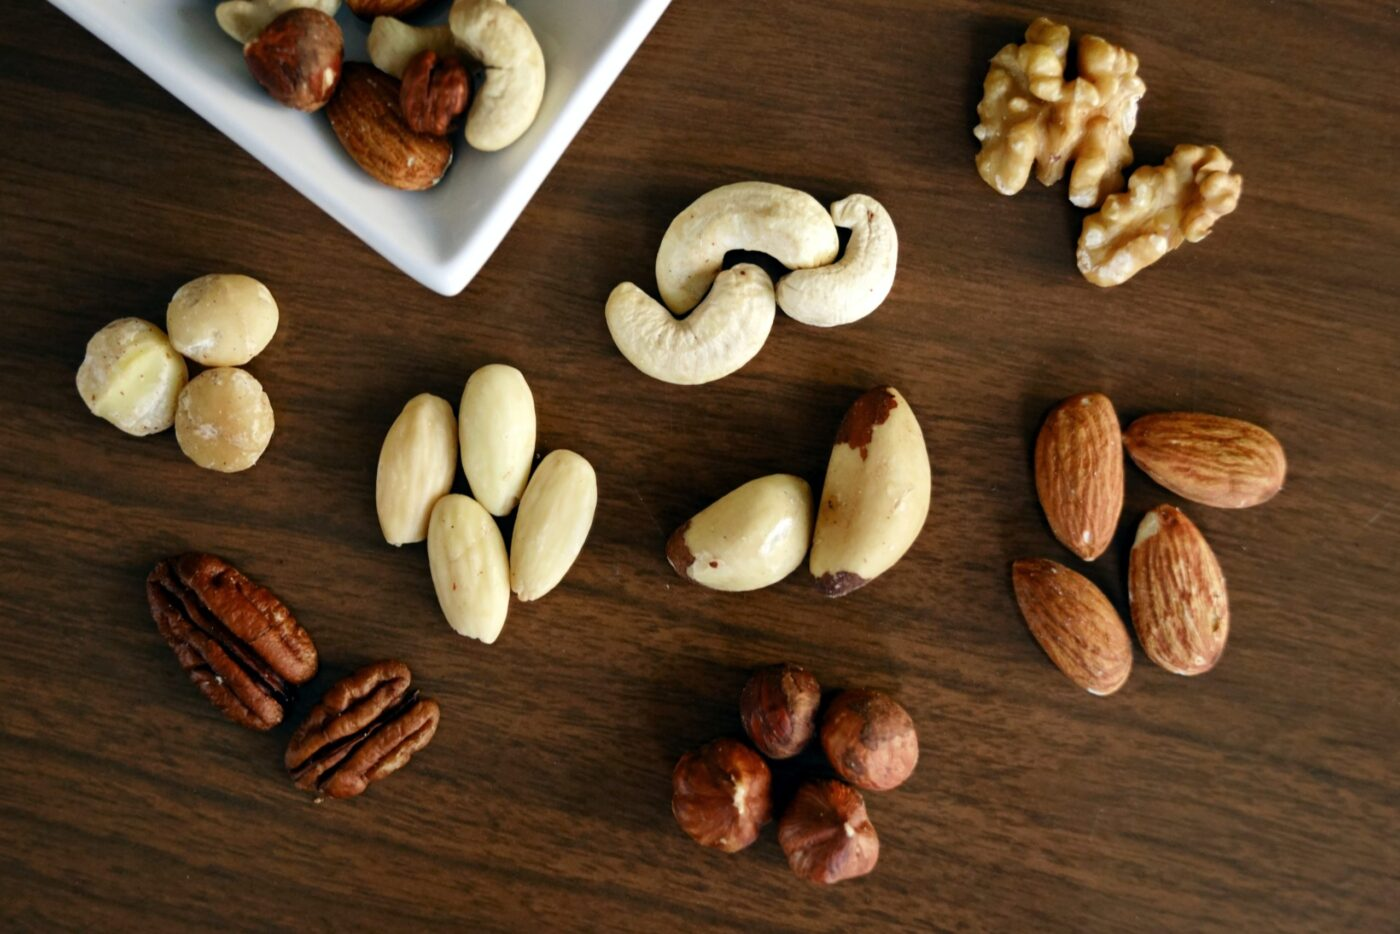 Which nuts go best with chocolate?